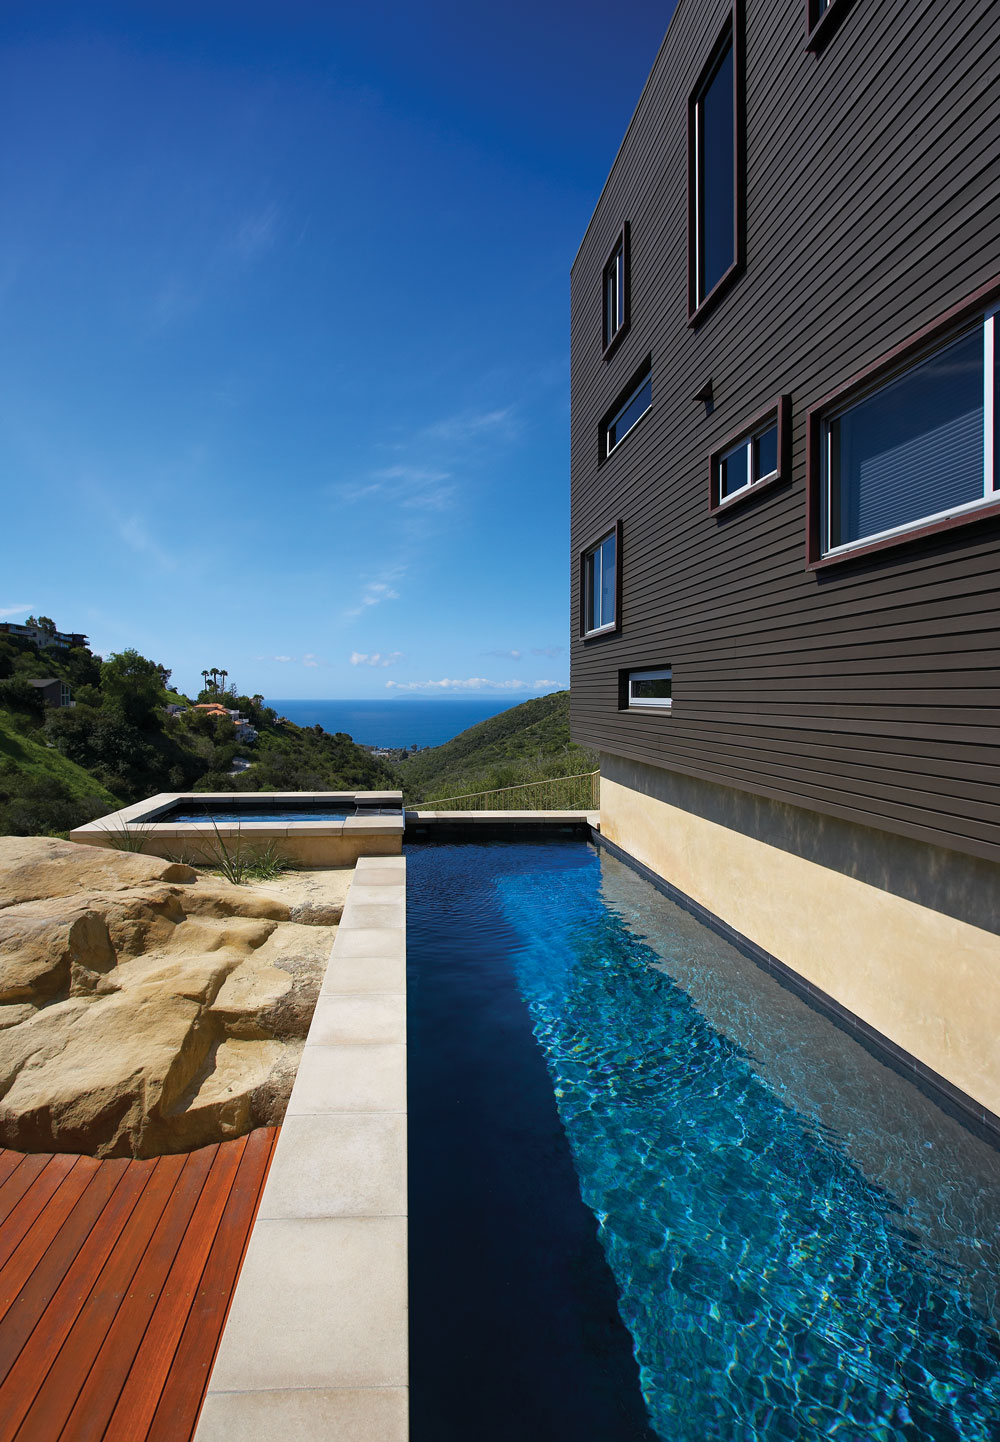 Contemporary-Exterior-Lap-Pool-Water-Feature-Corbin-Reeves.jpg